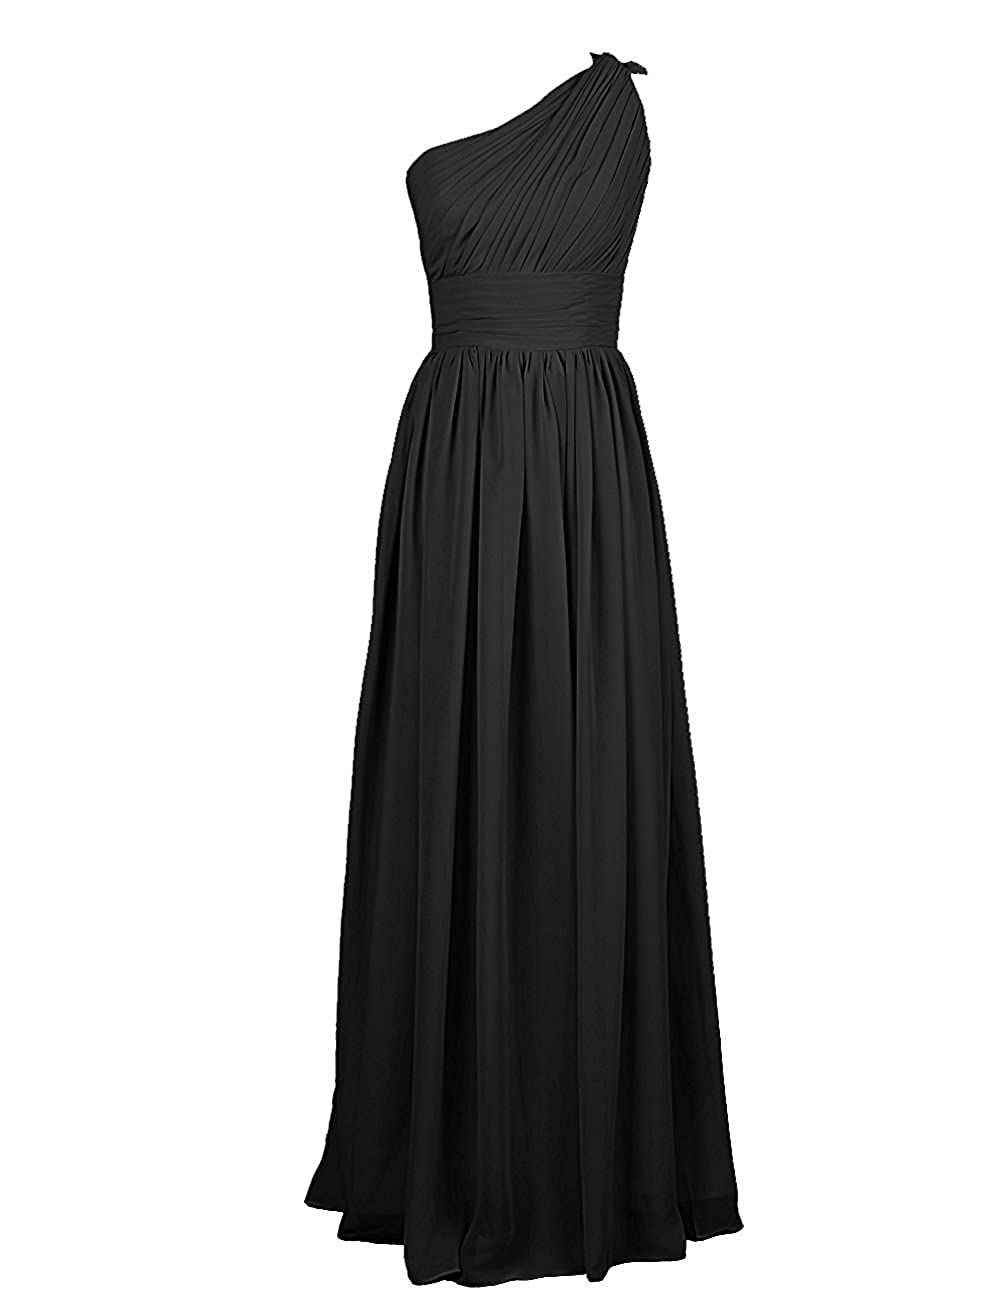 Victoria Prom One Shoulder Long Prom Dress Chiffon Bridesmaid Dress for Weddings at Amazon Womens Clothing store: